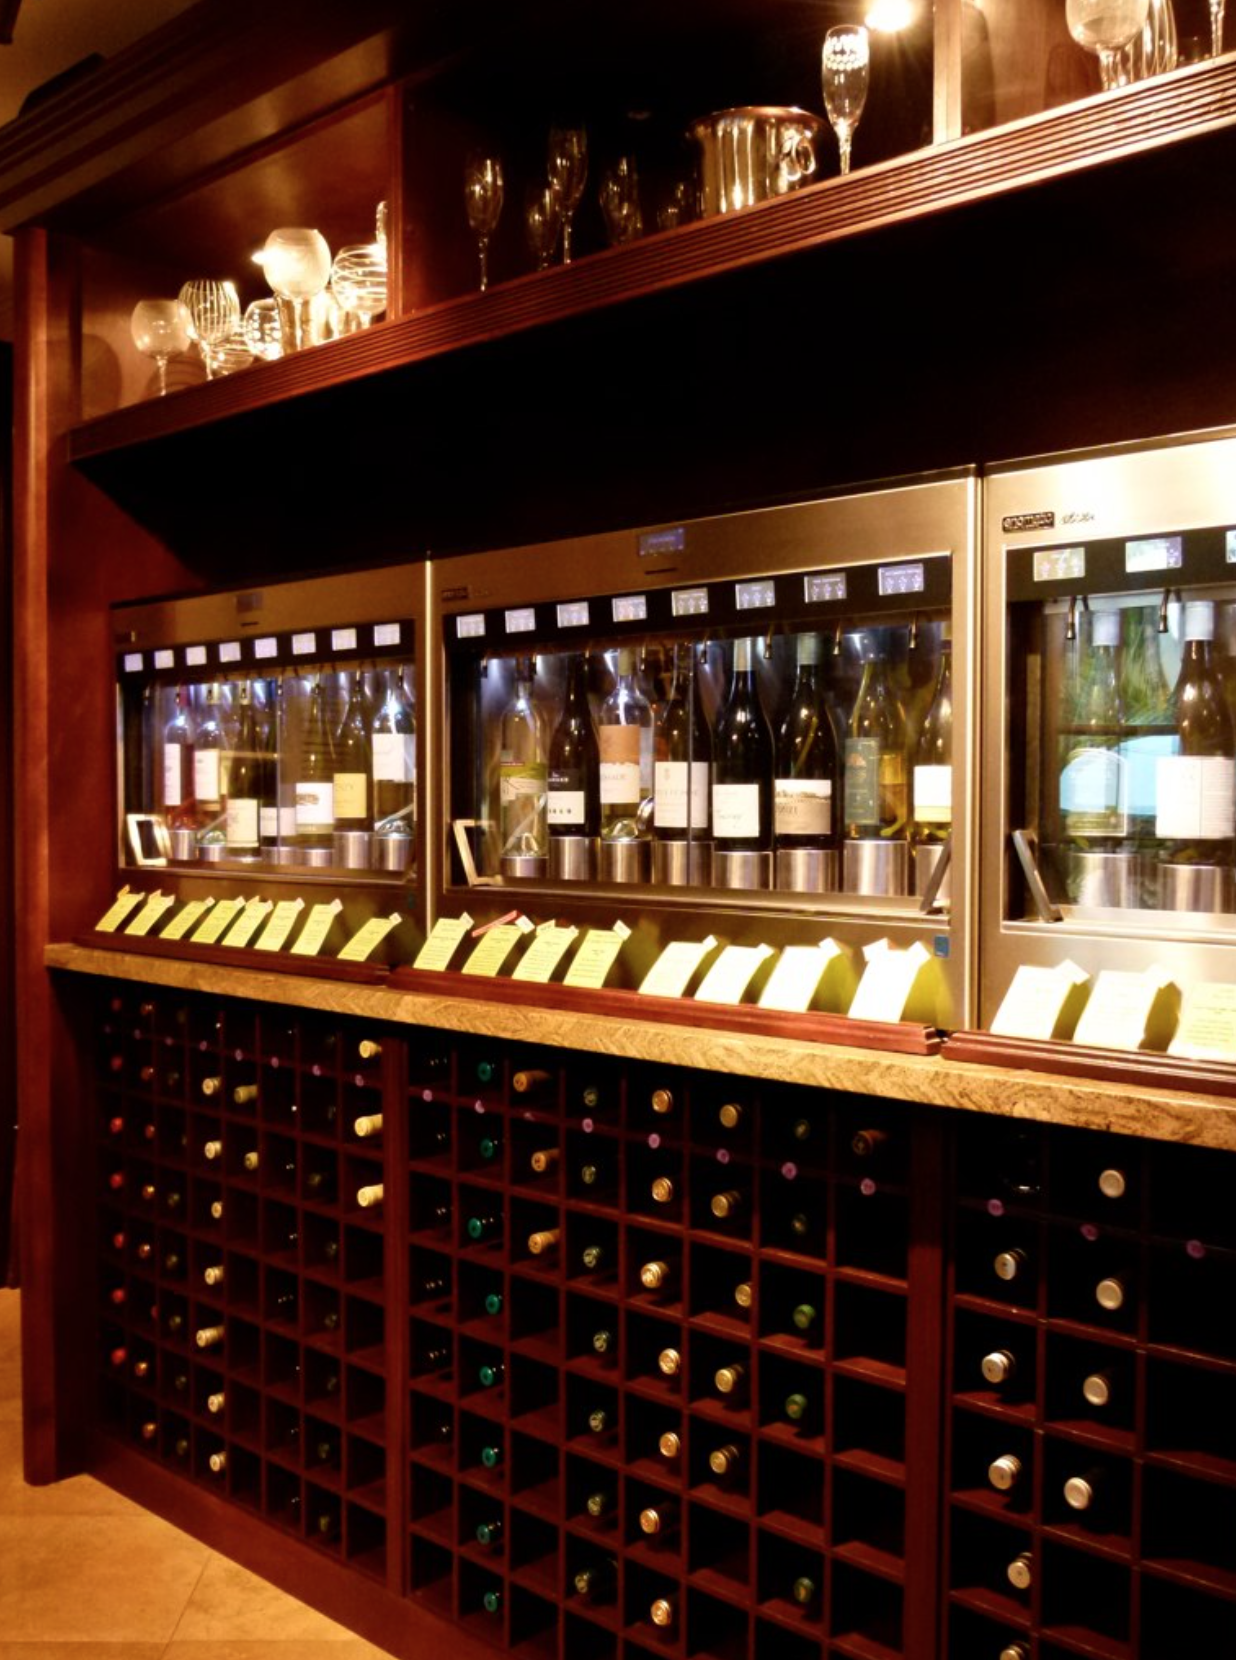 enoline elite wine dispenser system in a winebar with bottles underneath the enoline